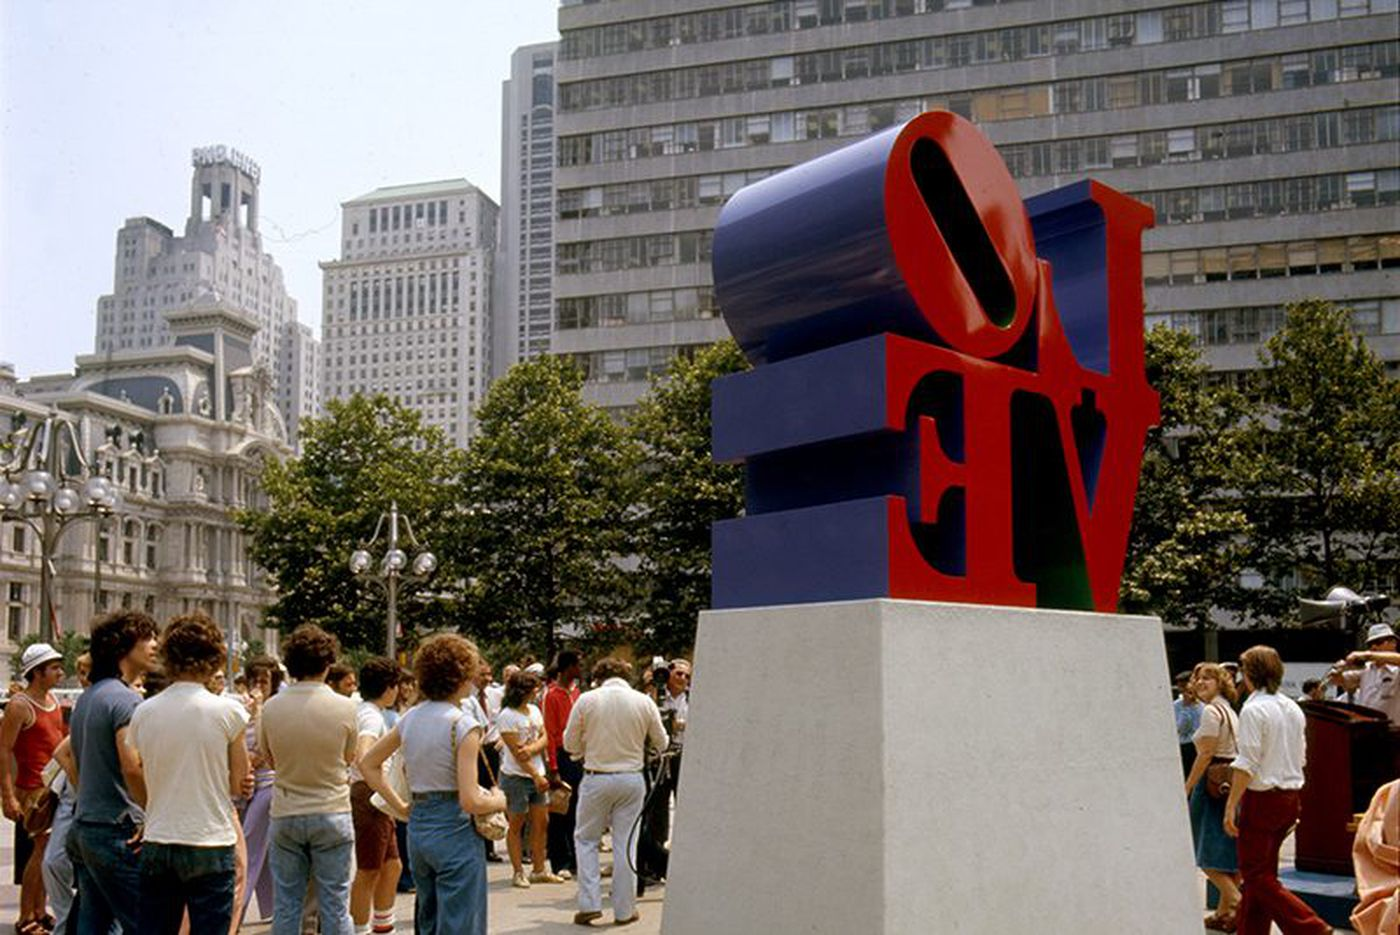 How Philly's 'LOVE' sculpture was painted the wrong color 30 years ago